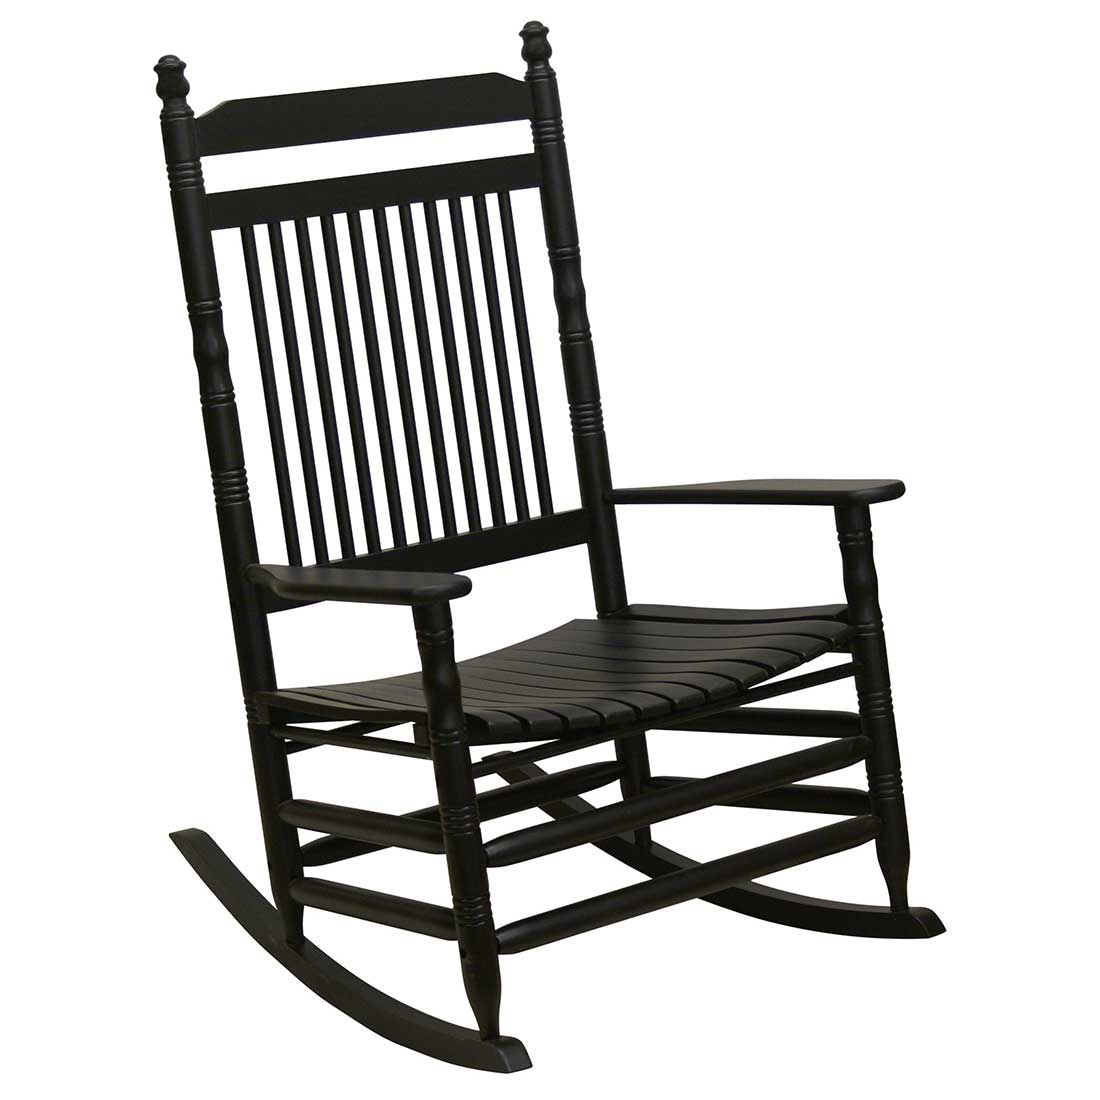 white wood rocking chair munchkin potty indoor wooden chairs cracker barrel old country store jumbo slat black